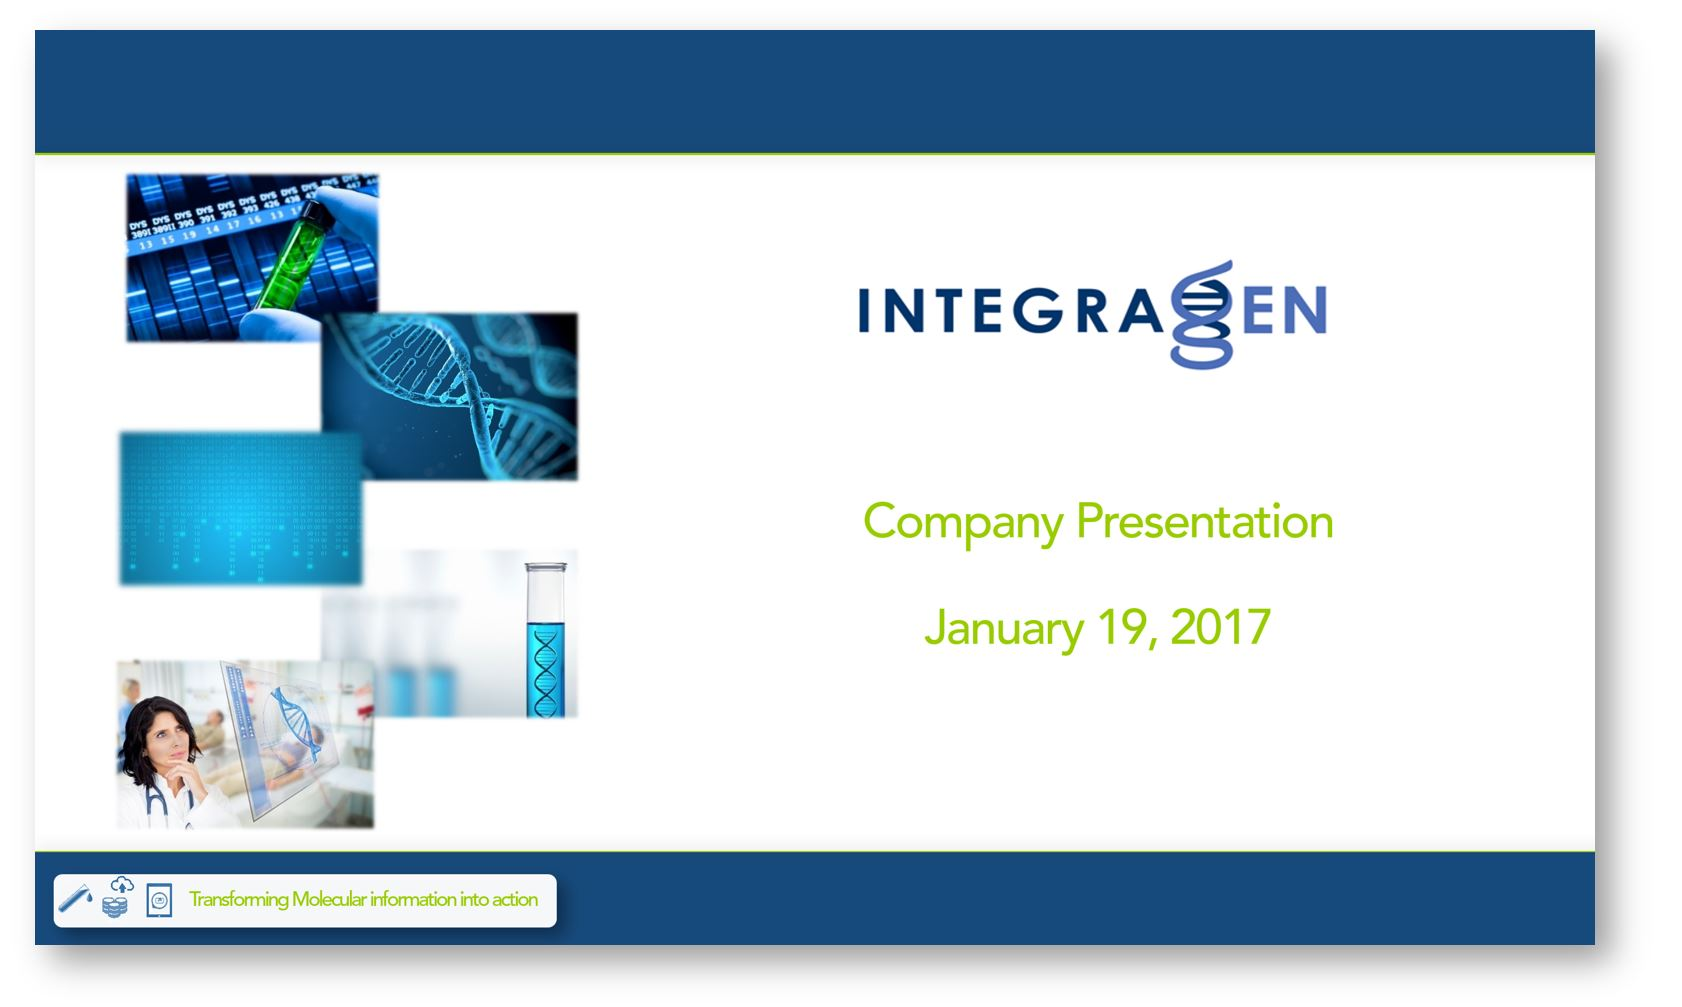 Corporate presentation image 19jan2017